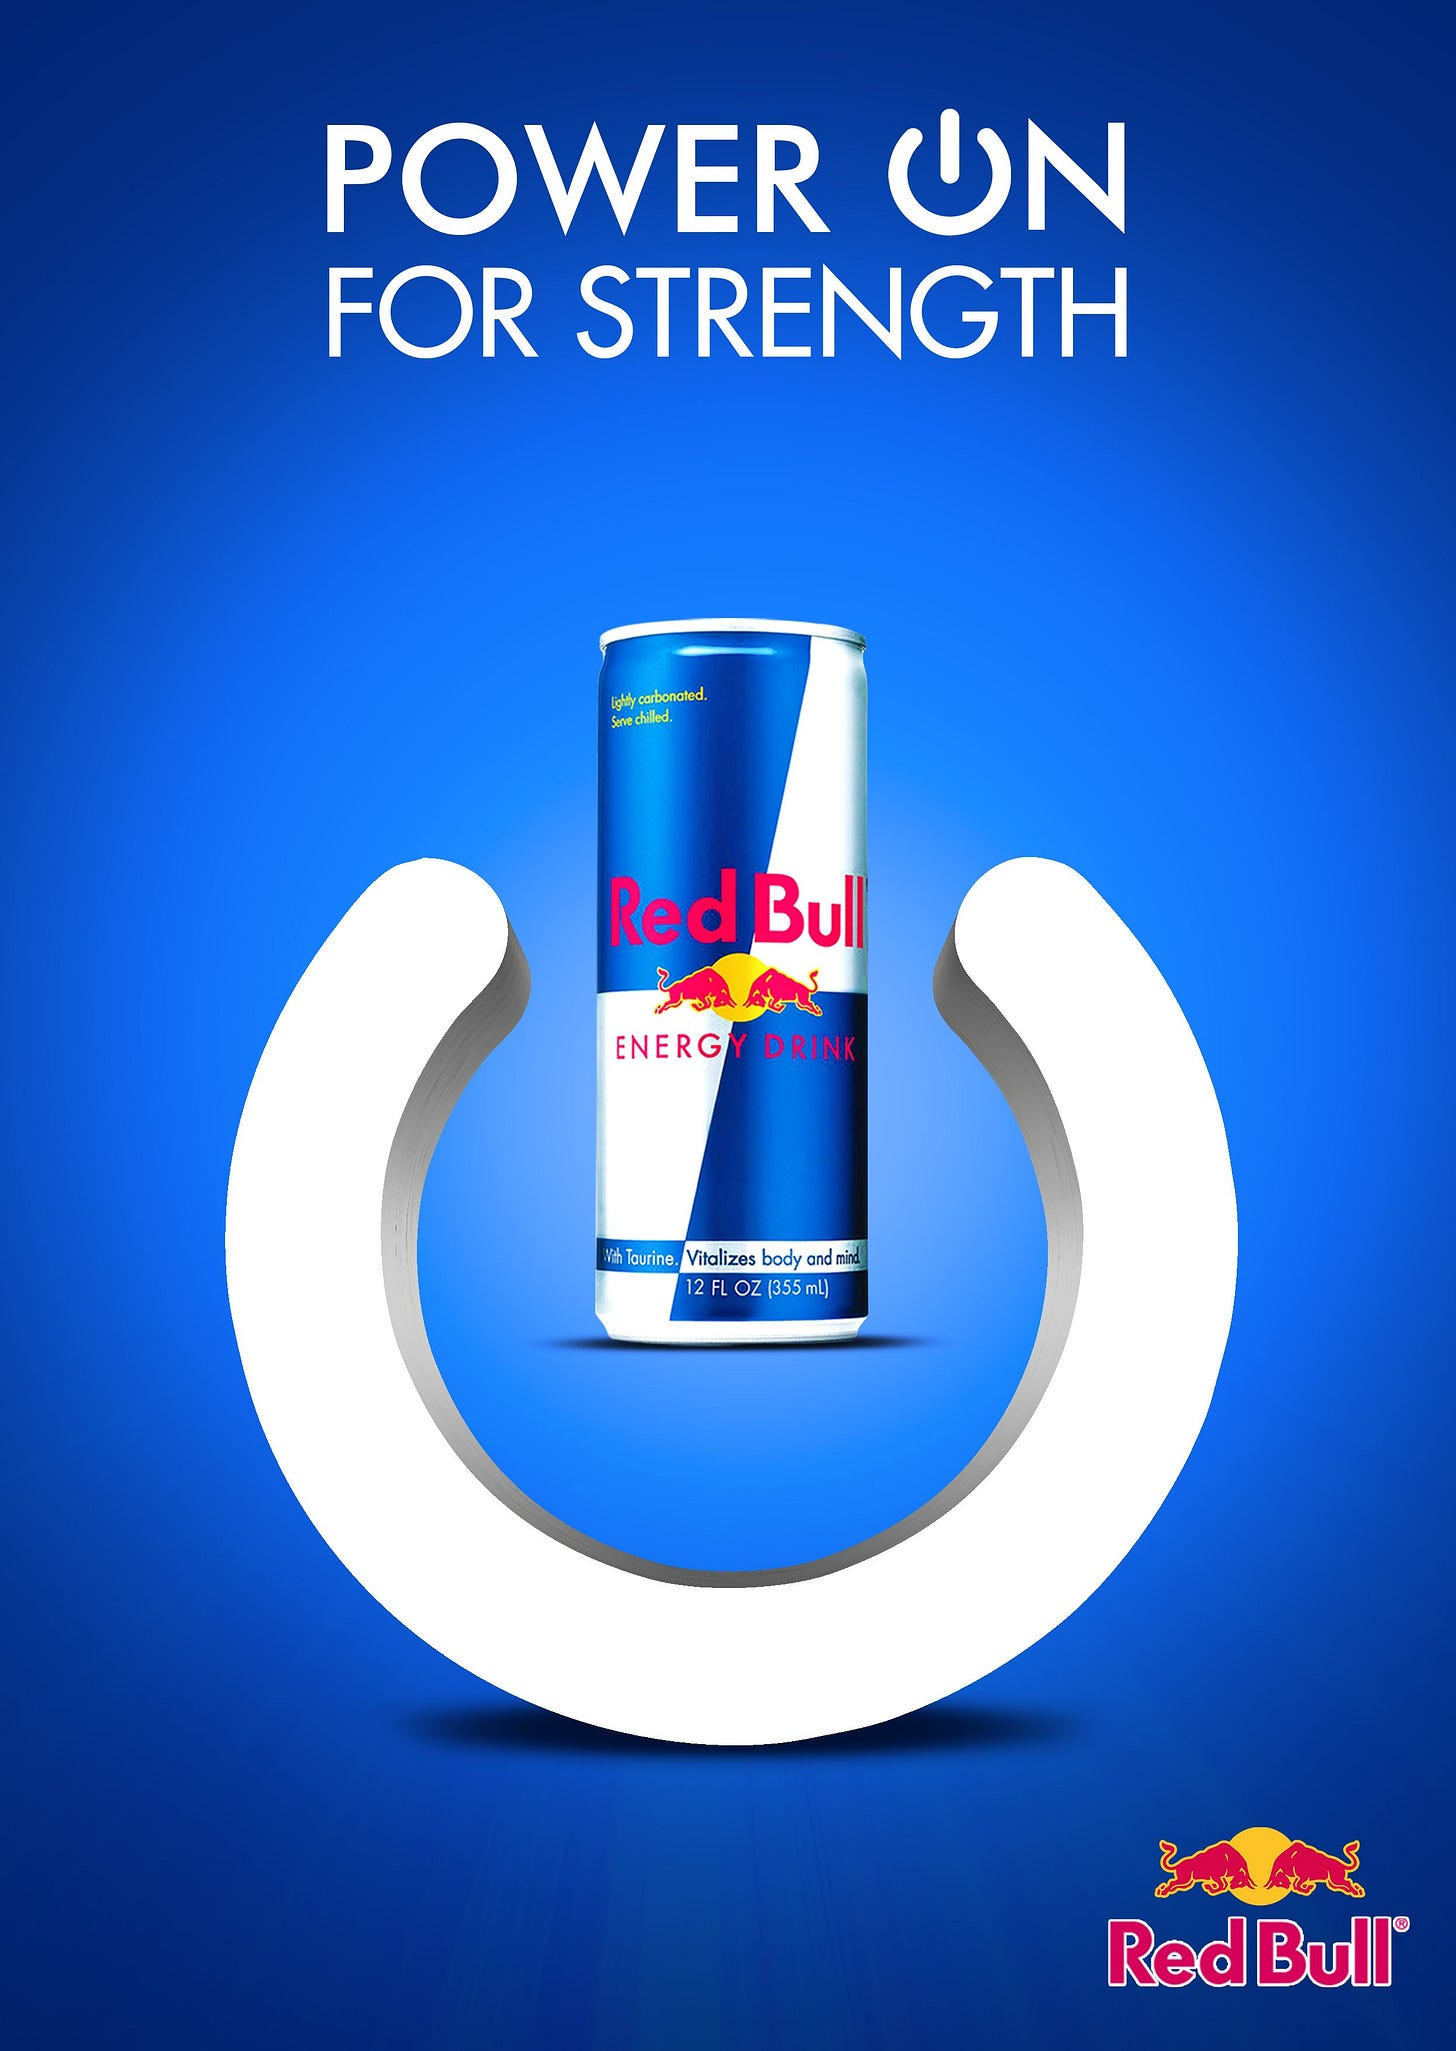 Red Bull Ad #ads #advertising | Ads creative, Red bull, Creative advertising  design